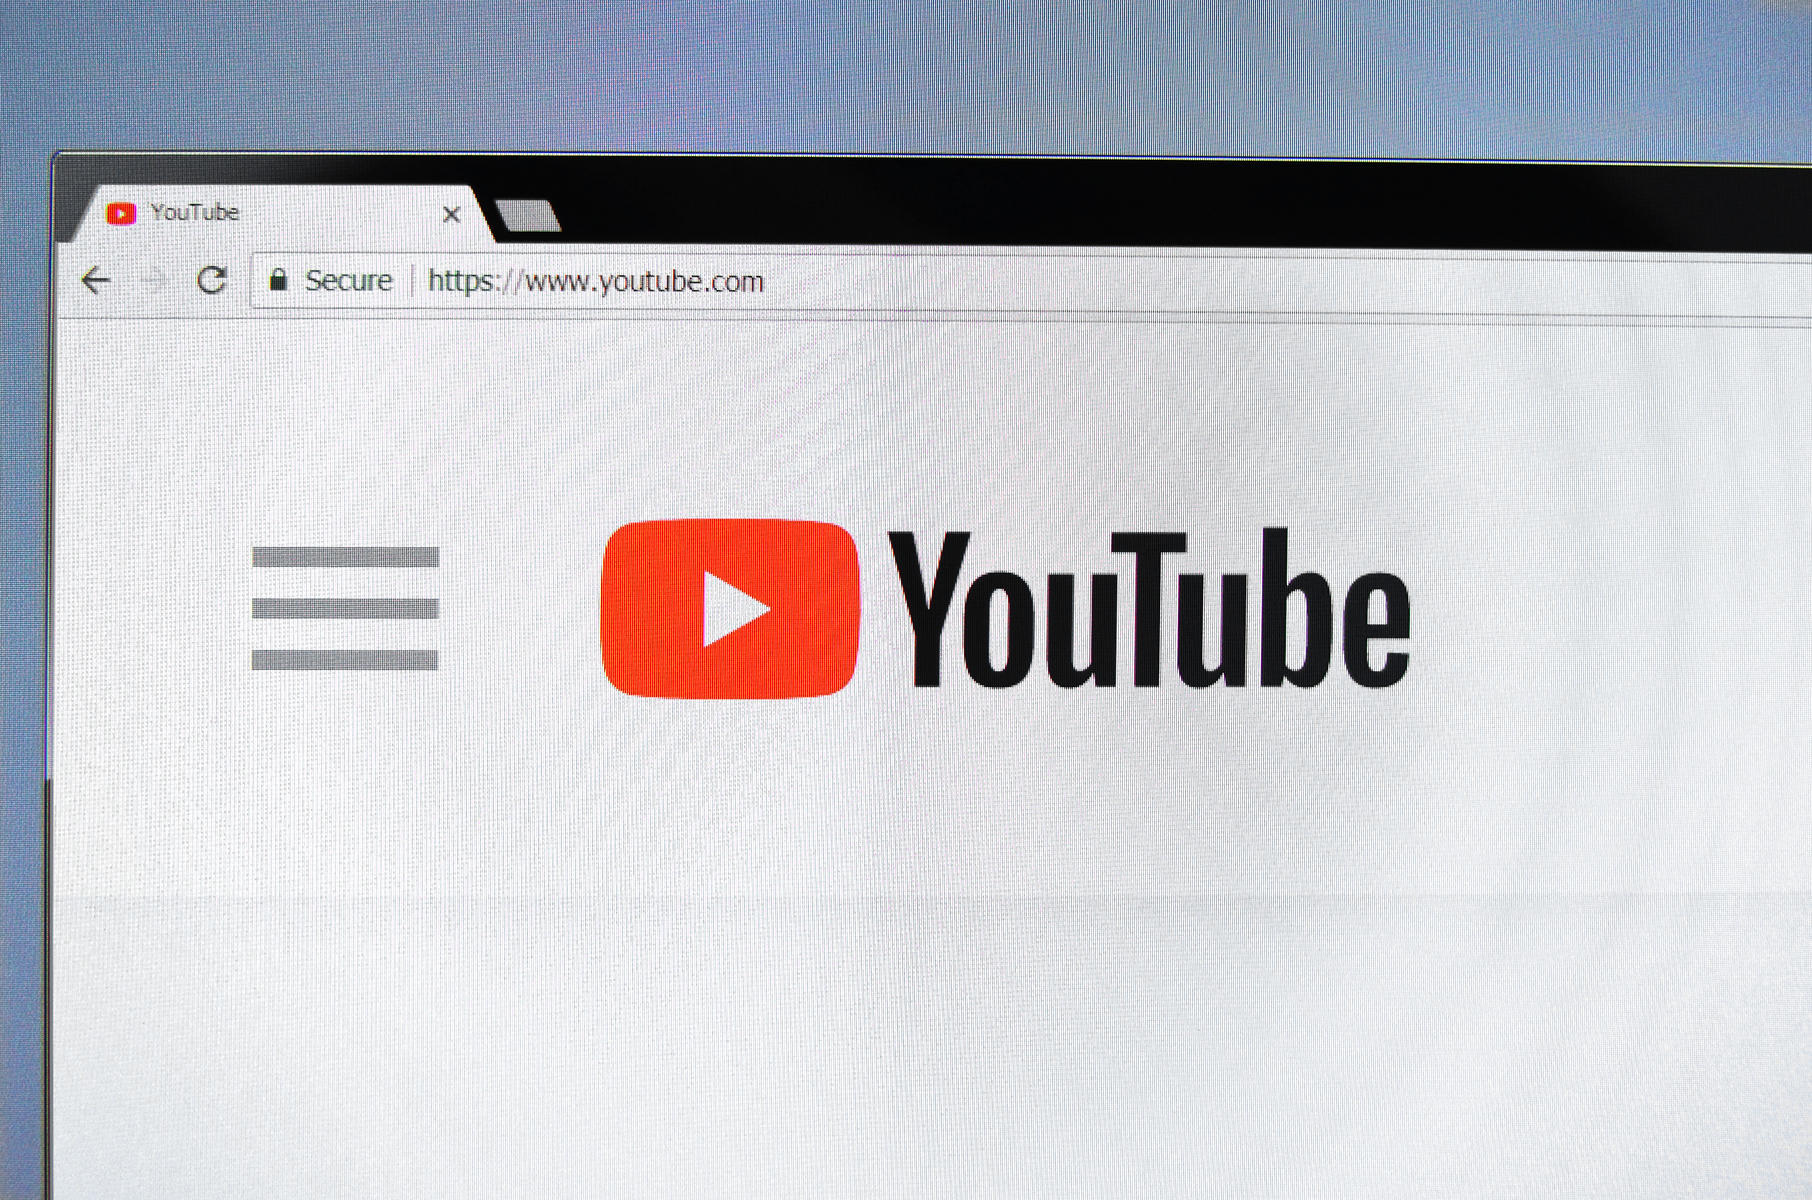 YouTube Announces Increase in Human Moderators in Efforts to Protect Child Users